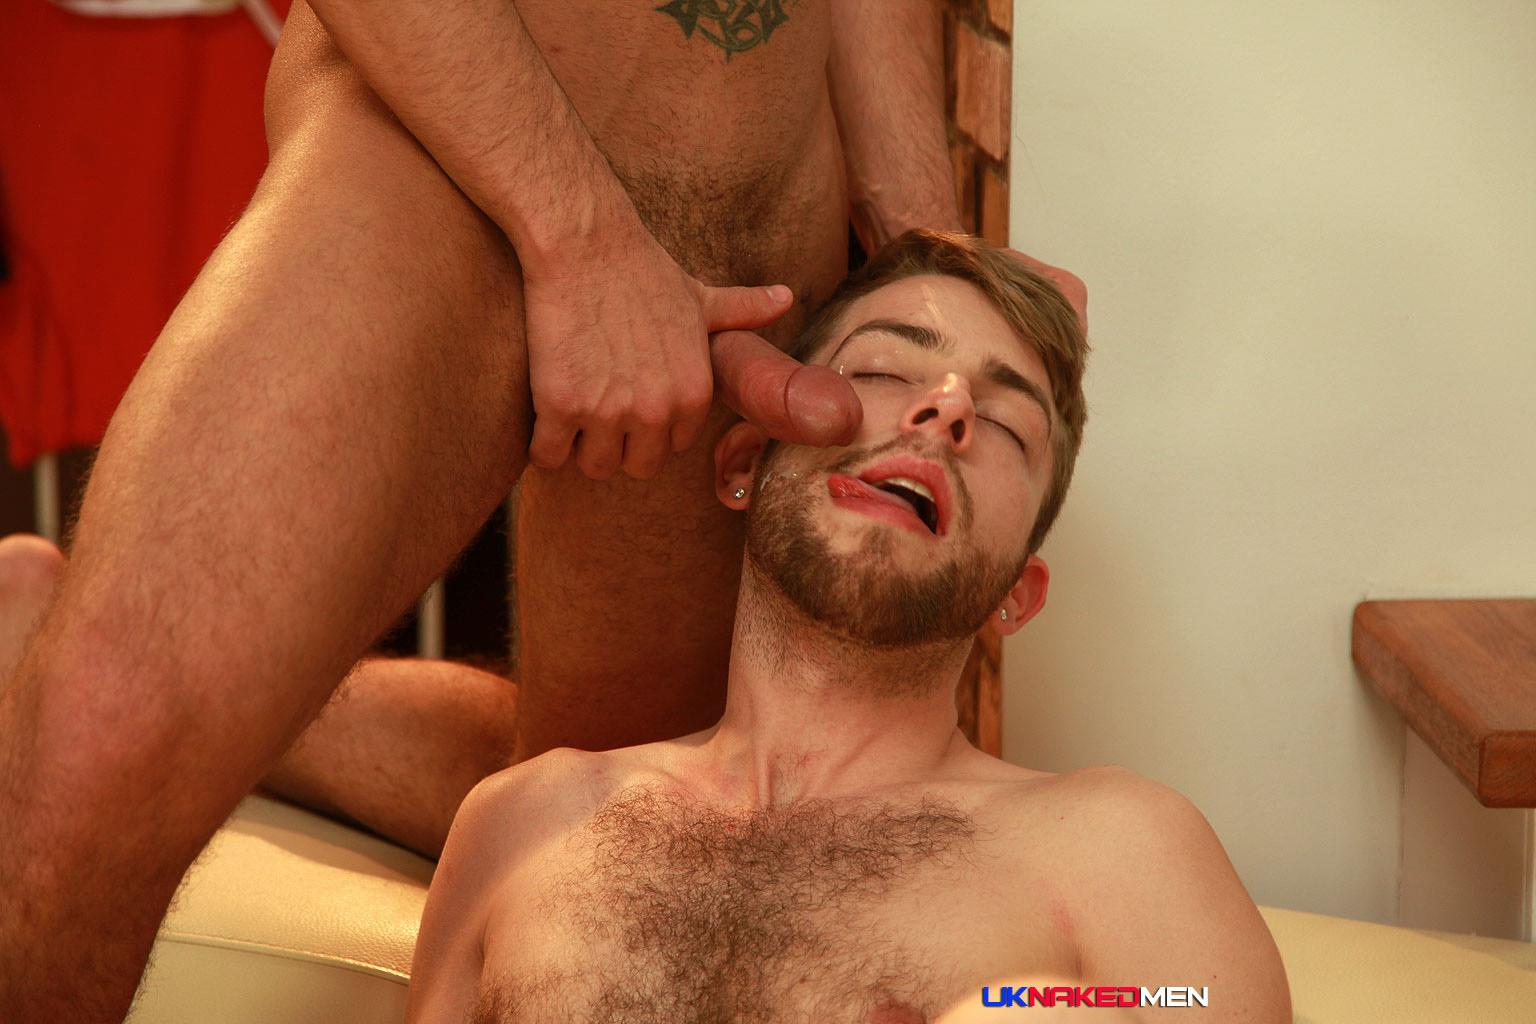 UK Naked Men Killian James and Gabriel Phoenix Hairy Uncut Cocks Fucking Amateur Gay Porn 27 UK Naked Men:  Hairy Uncut Hunk Killian James Fucking Gabriel Phoenix